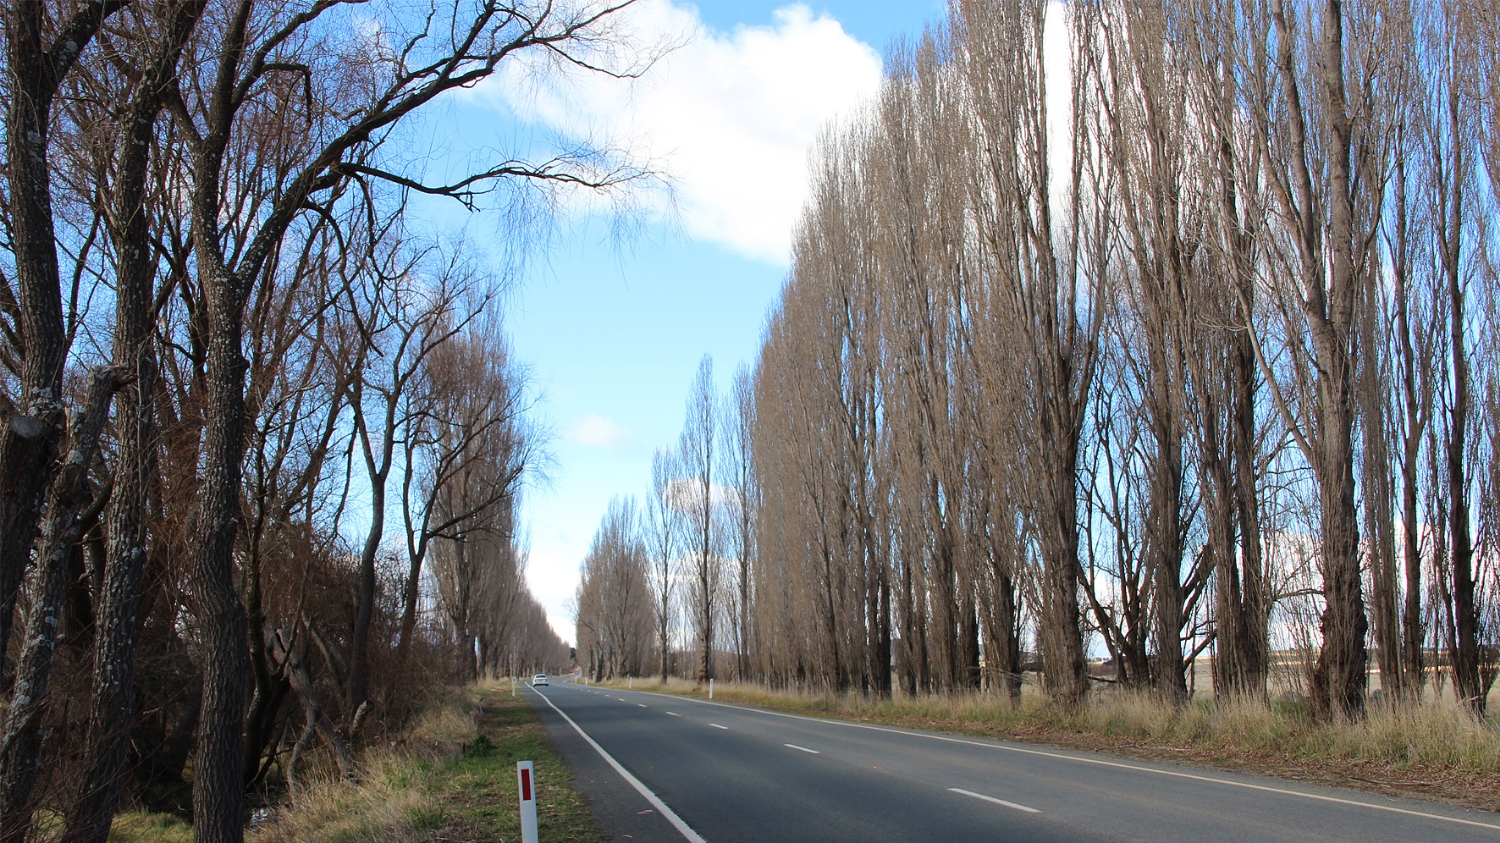 Kings Highway VIA + Tree Management Plan